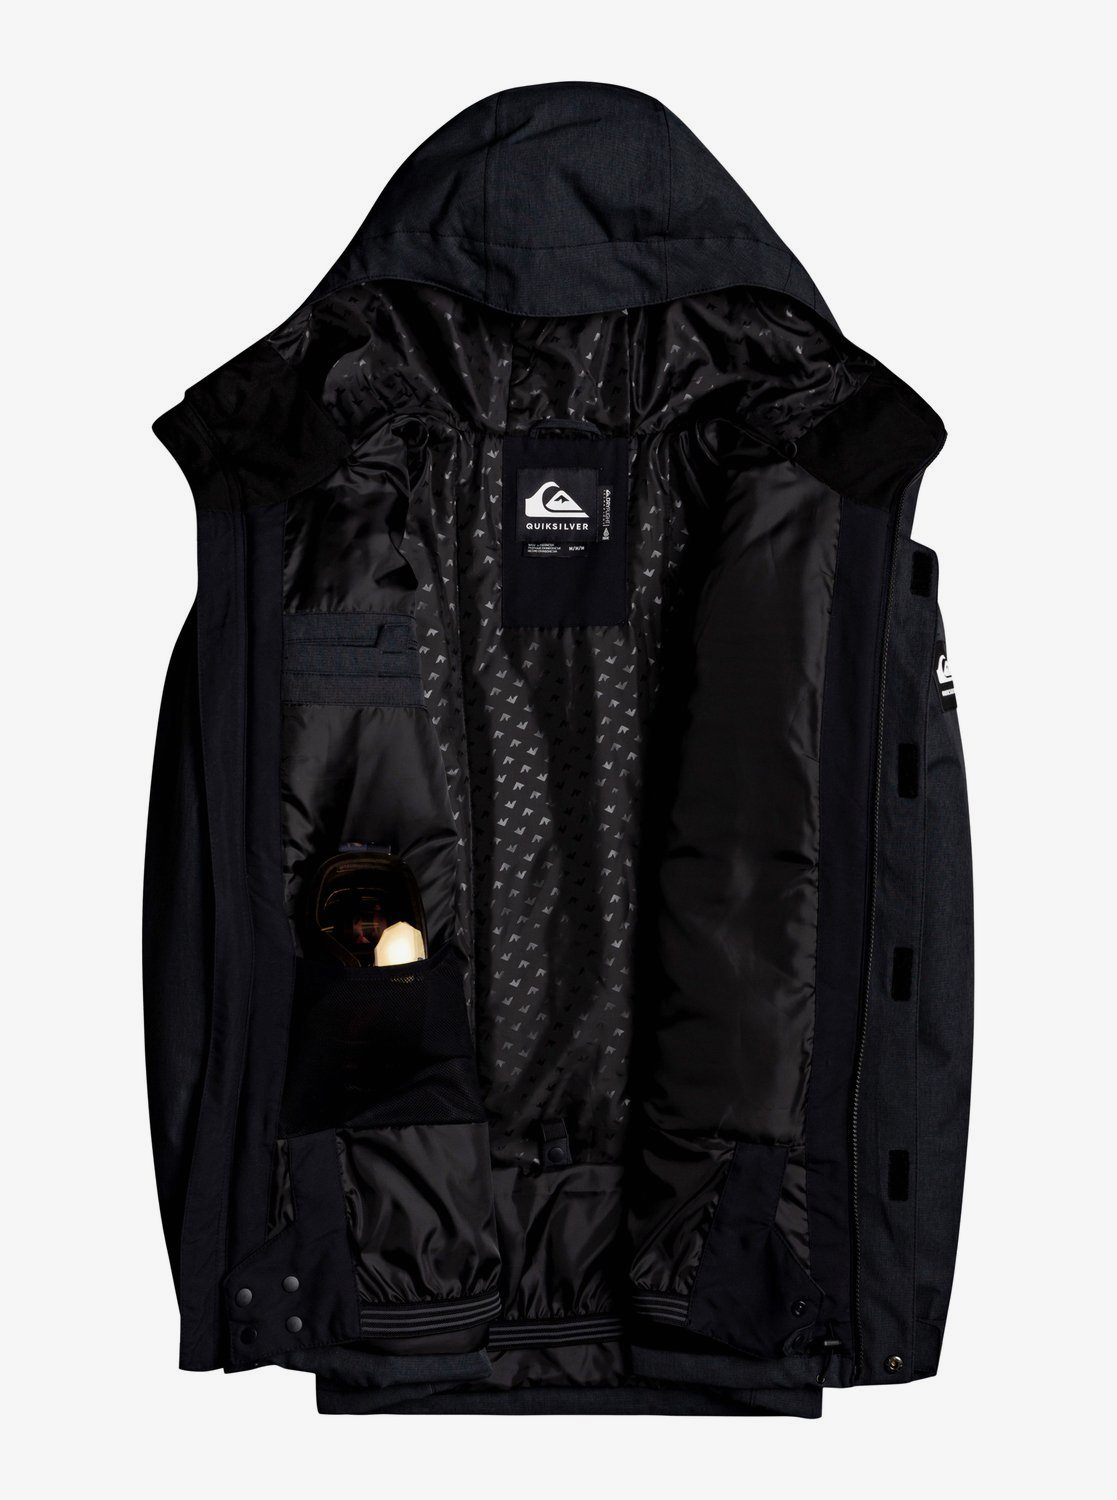 Куртка мужская QUIKSILVER Mission Solid. Фото N2